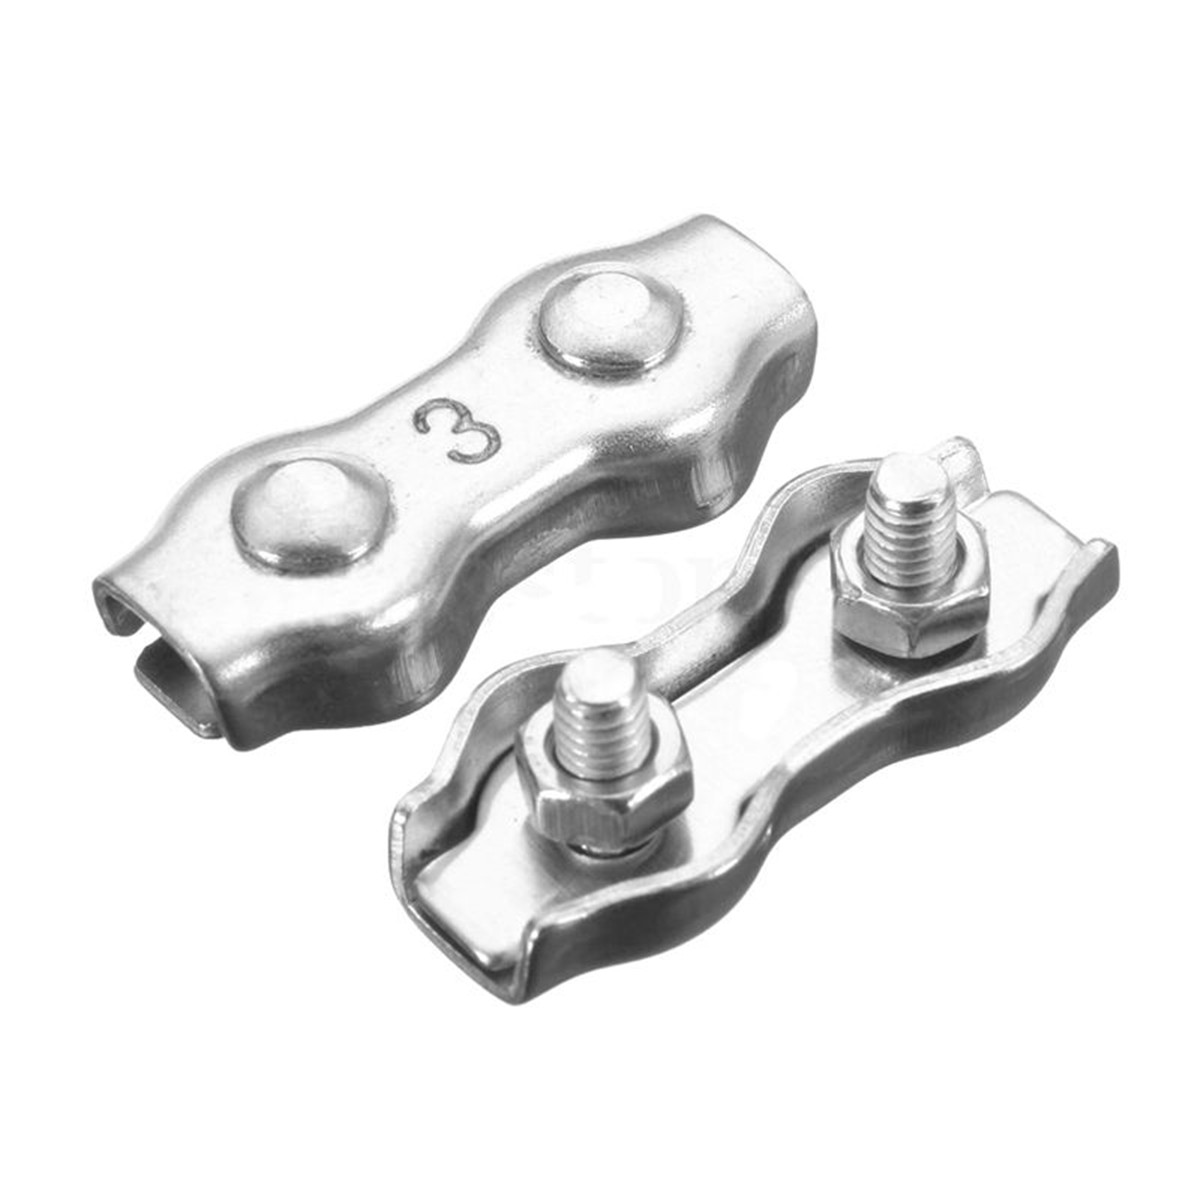 M2 Wire Rope Clip Clamp 304 Stainless Steel Duplex Cable clip (Pack of 20)